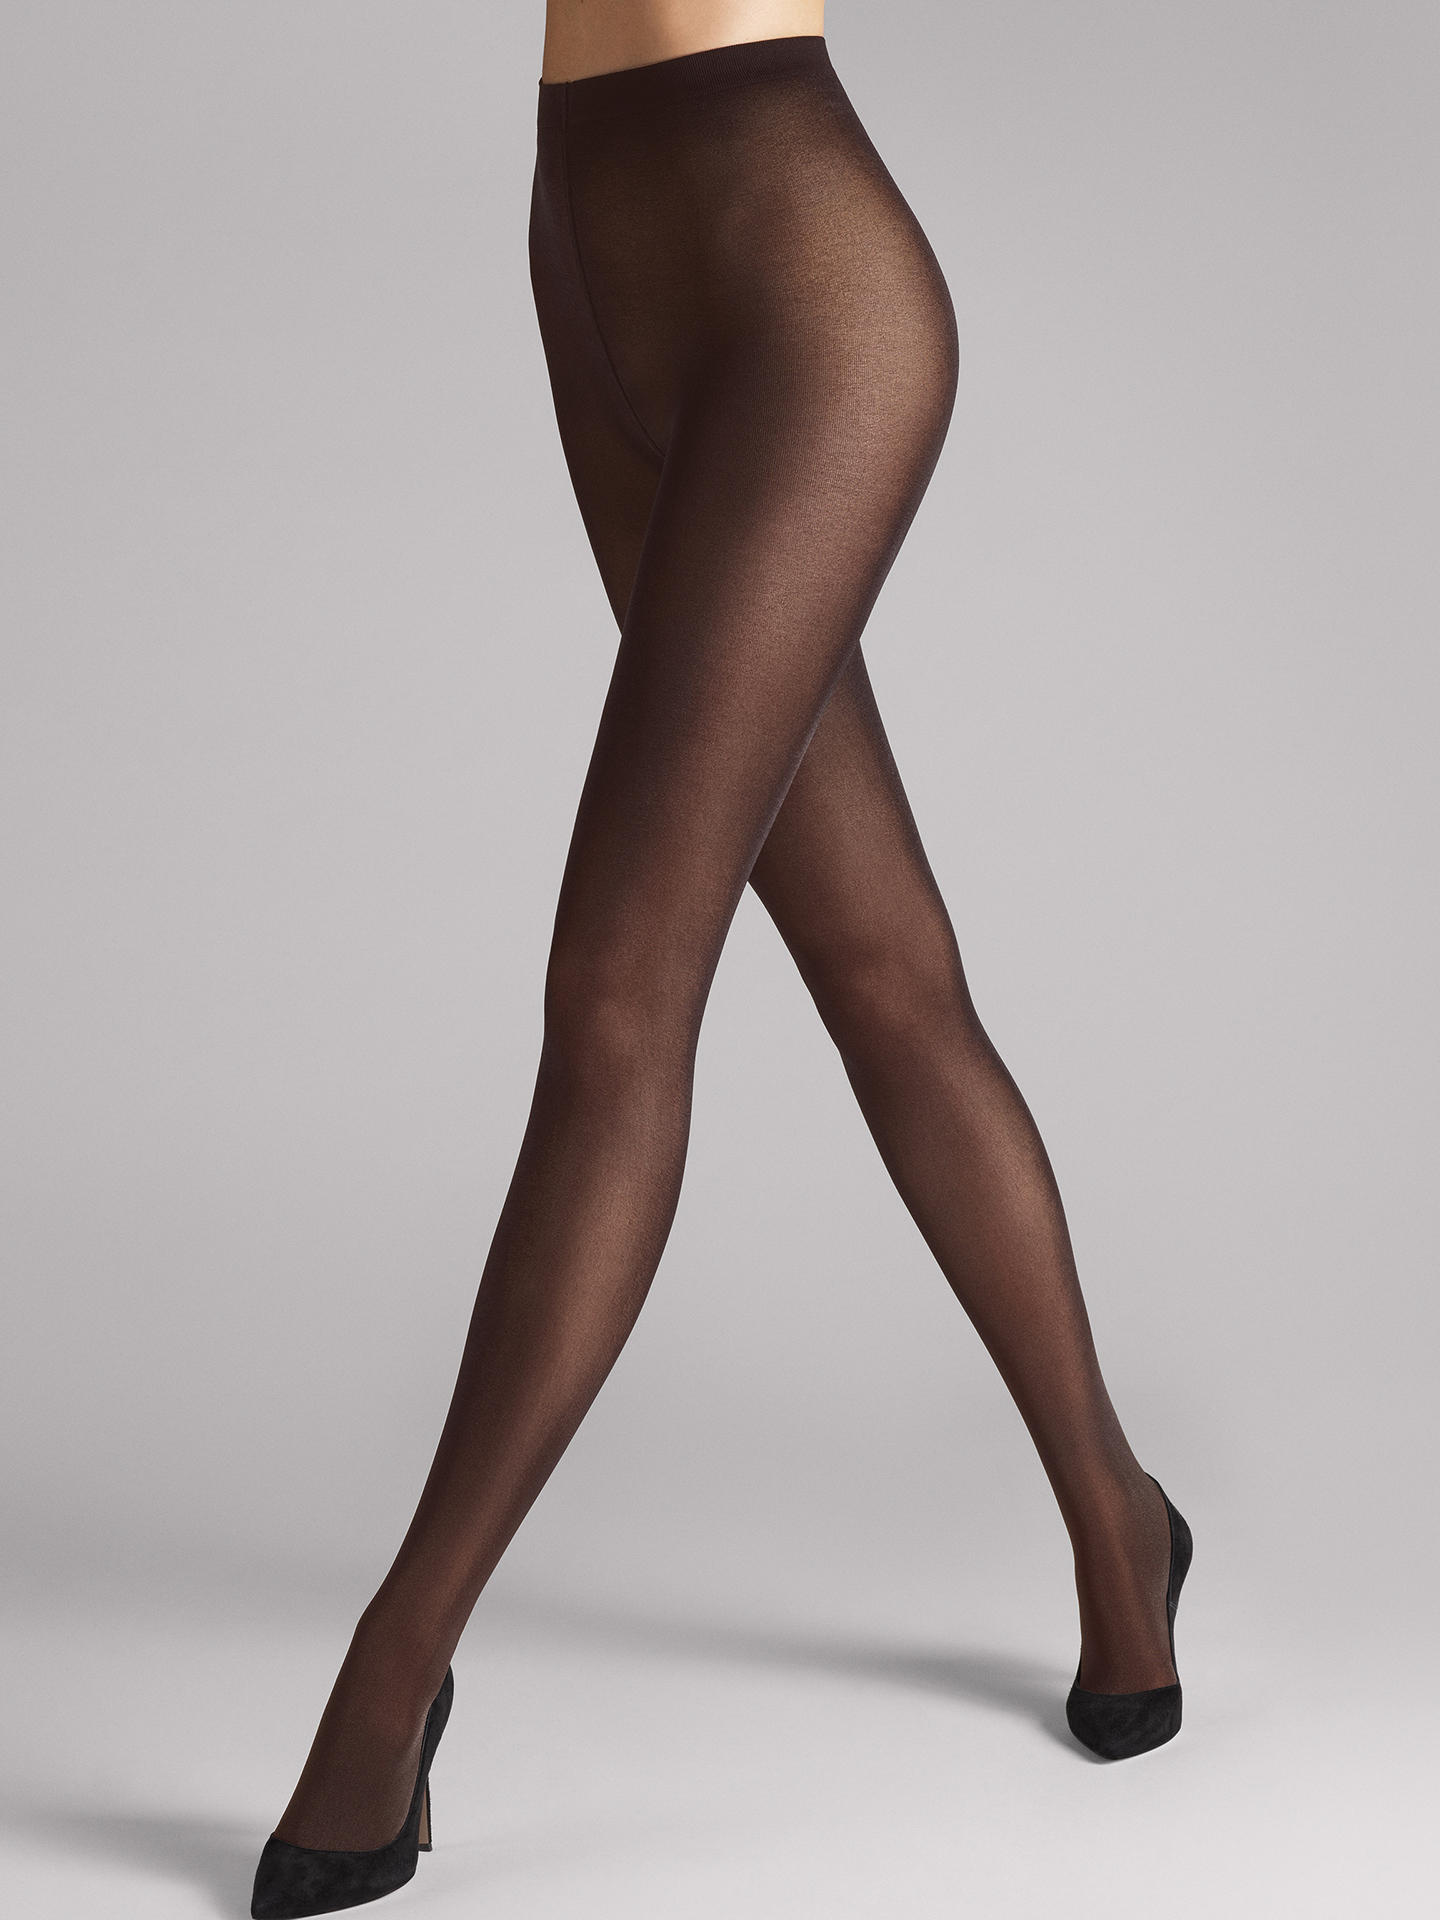 Wolford Apparel & Accessories > Clothing > Collant Satin Opaque 50 - 4250 - XS